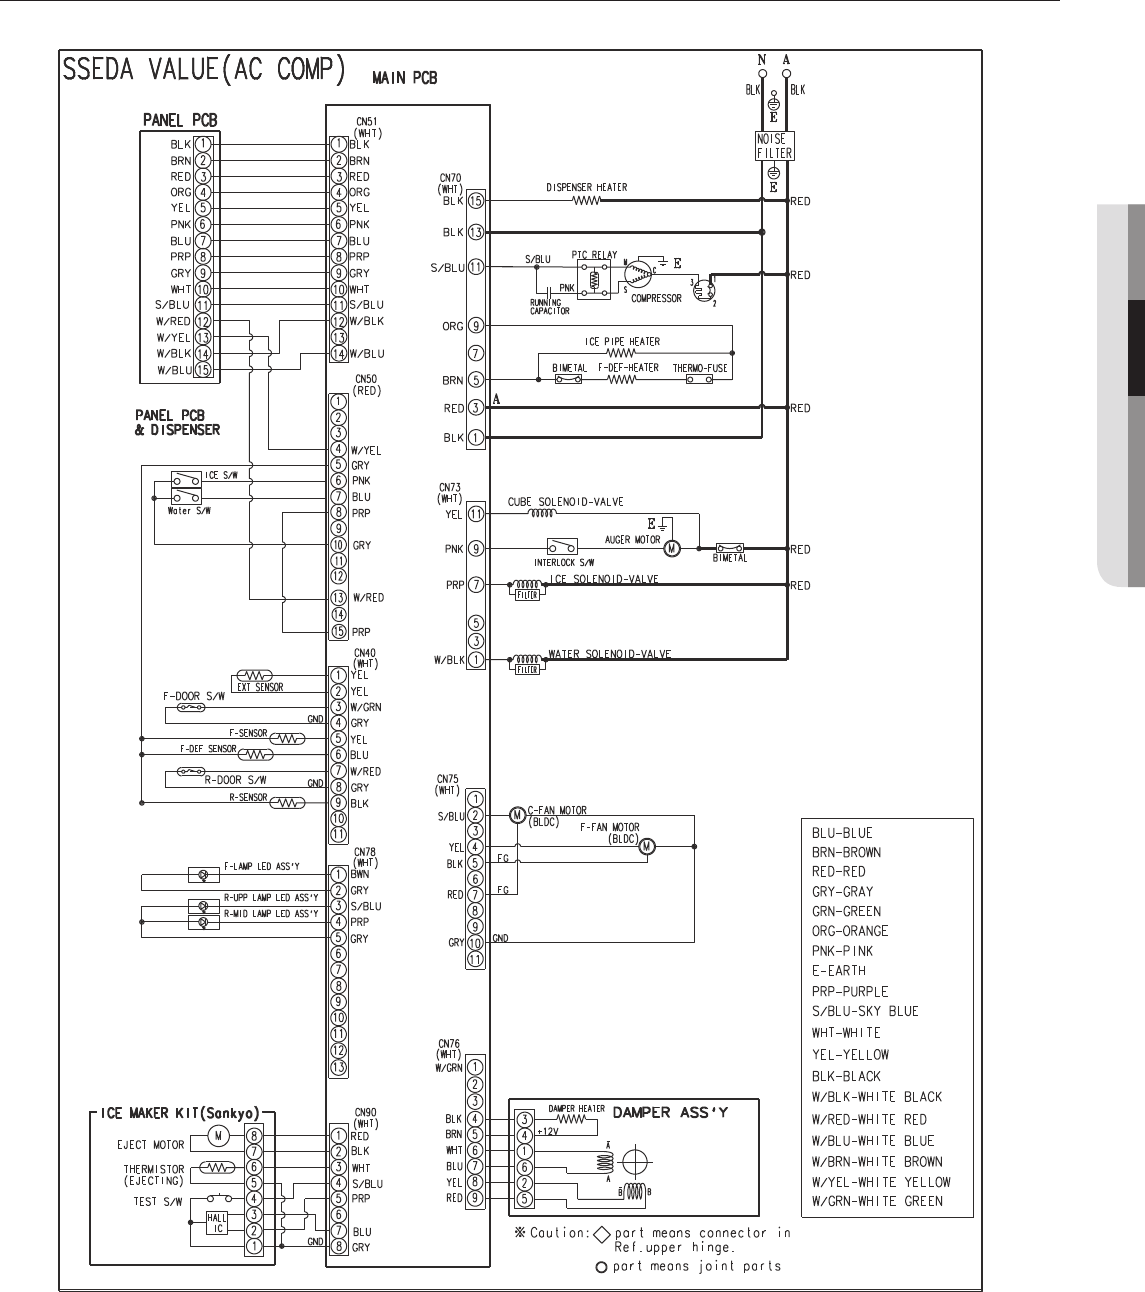 21aa6212 5c03 4539 ac02 99a0885d5c5e bg1f page 31 of samsung refrigerator rs261mdwp user guide fridge wiring diagram manual at readyjetset.co